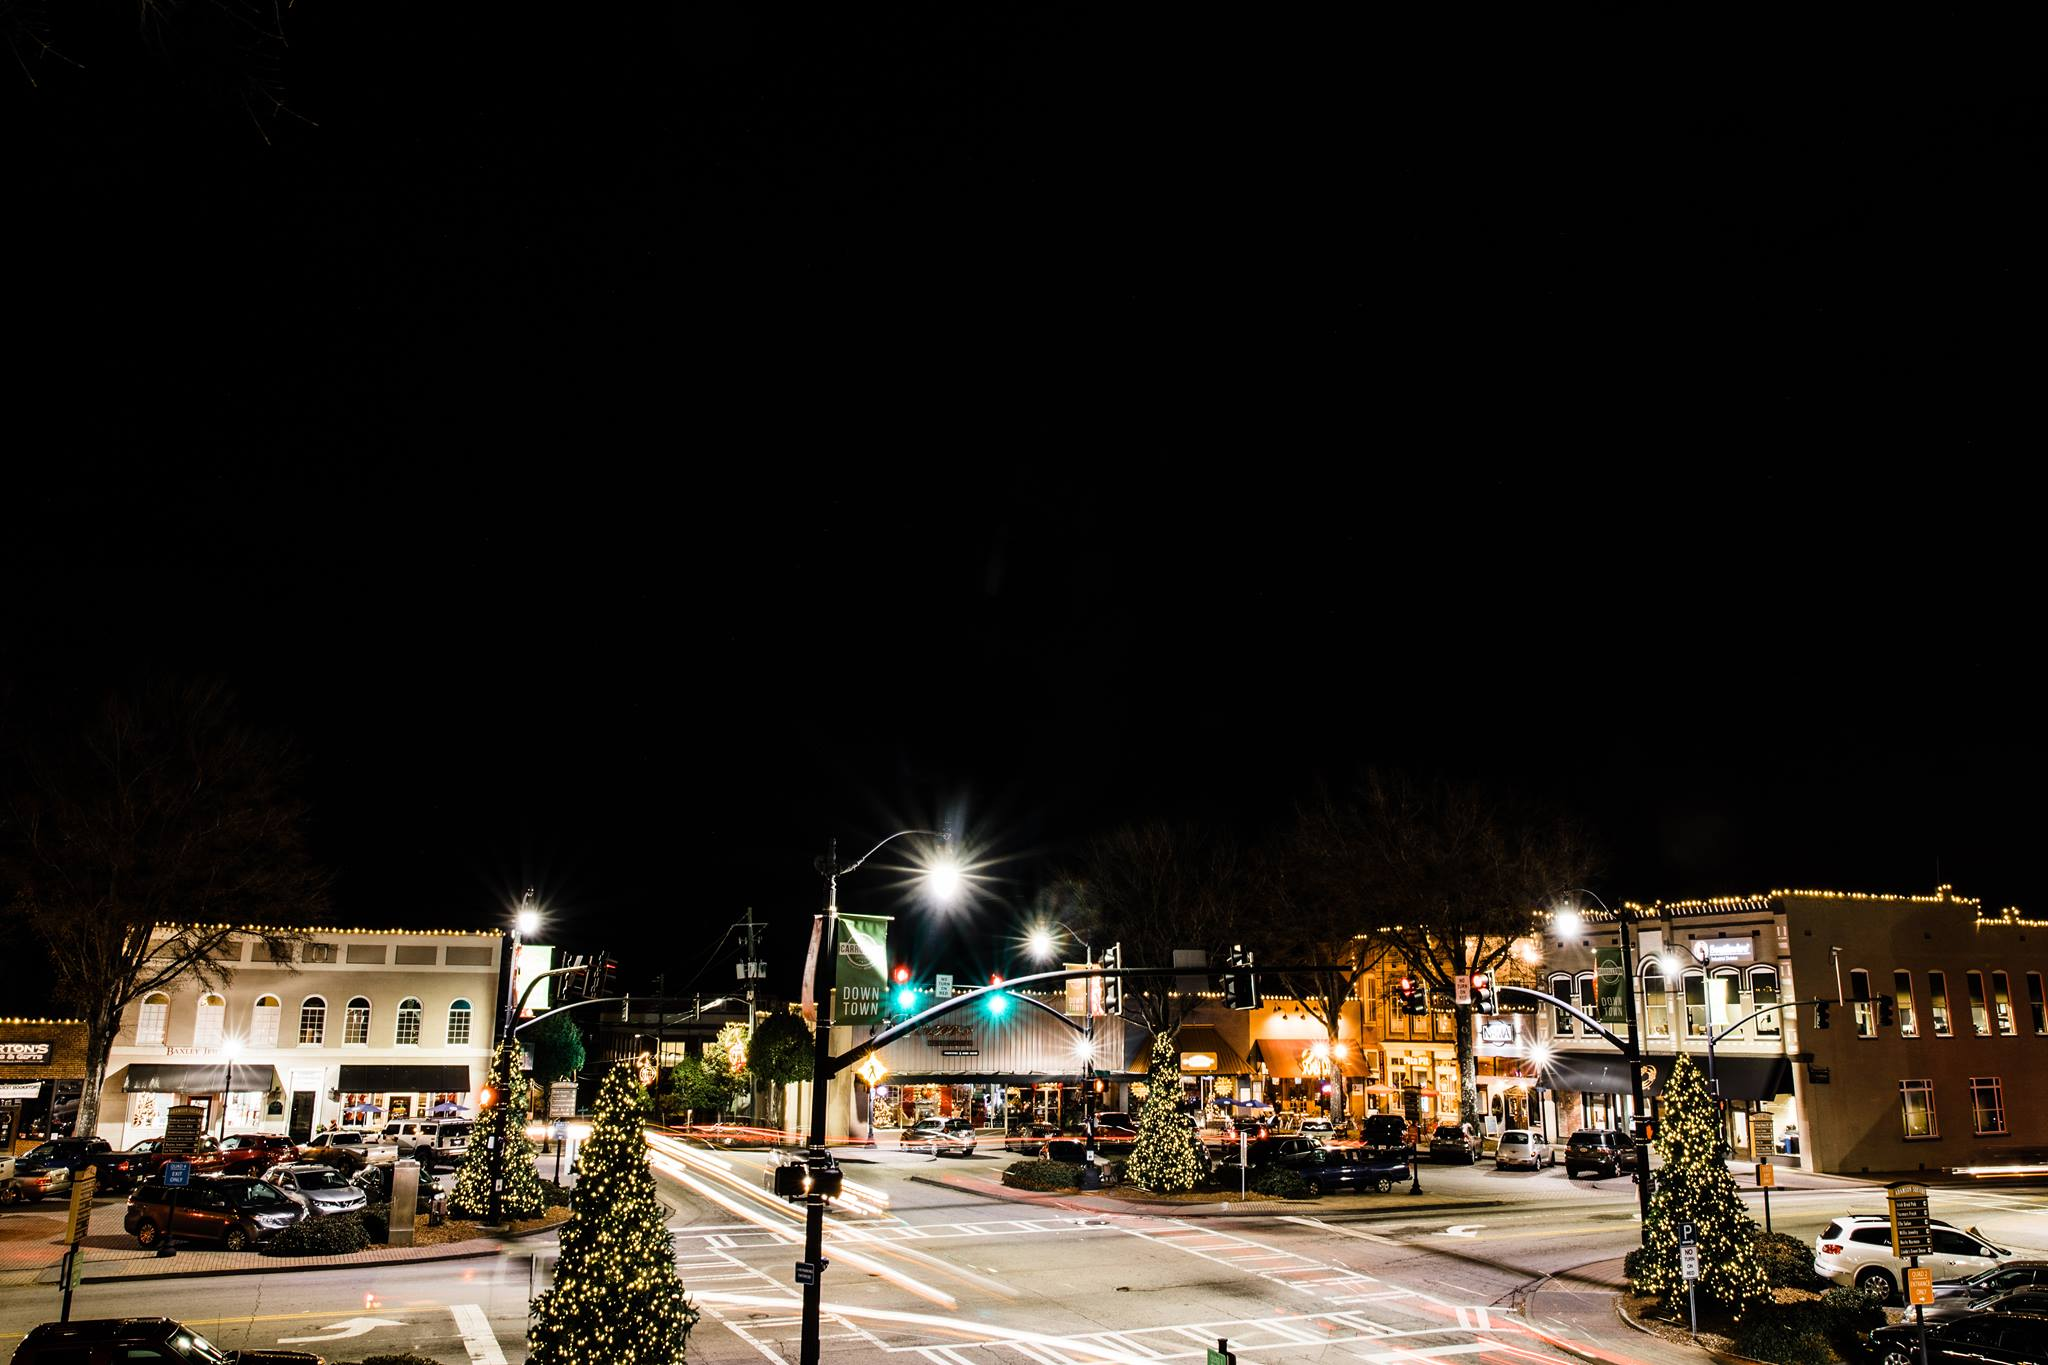 Lighting of the Square on Small Business Saturday